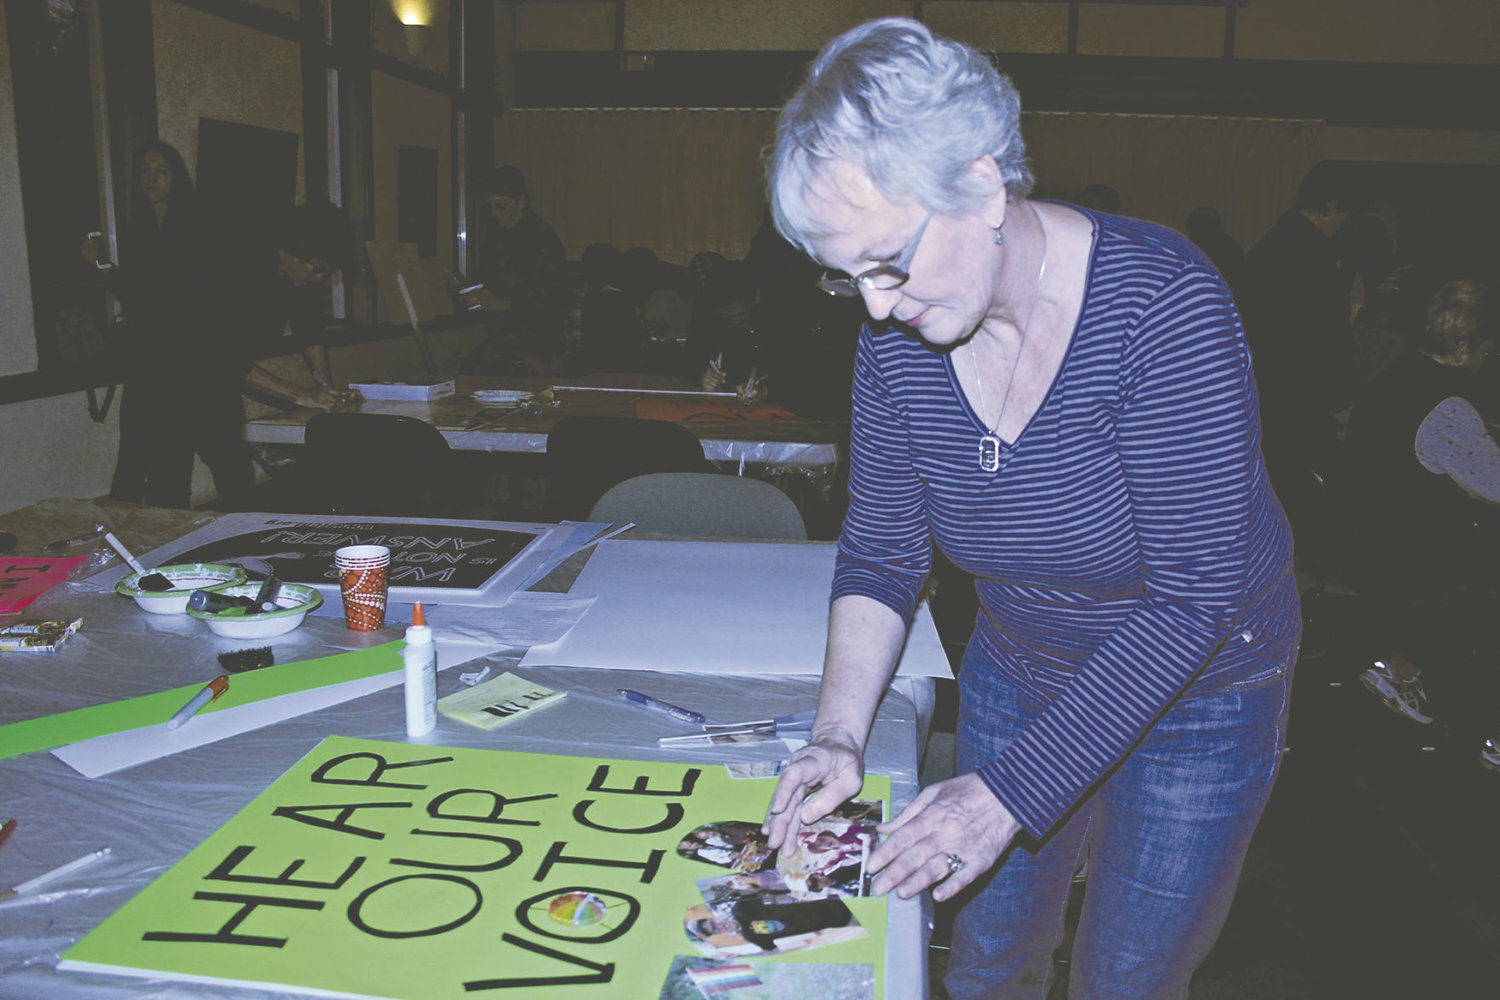 Sue Edwards puts the finishing touches on her poster at the Quimper Unitarian Universalist Fellowship Jan. 16. Photo by Kirk Boxleitner